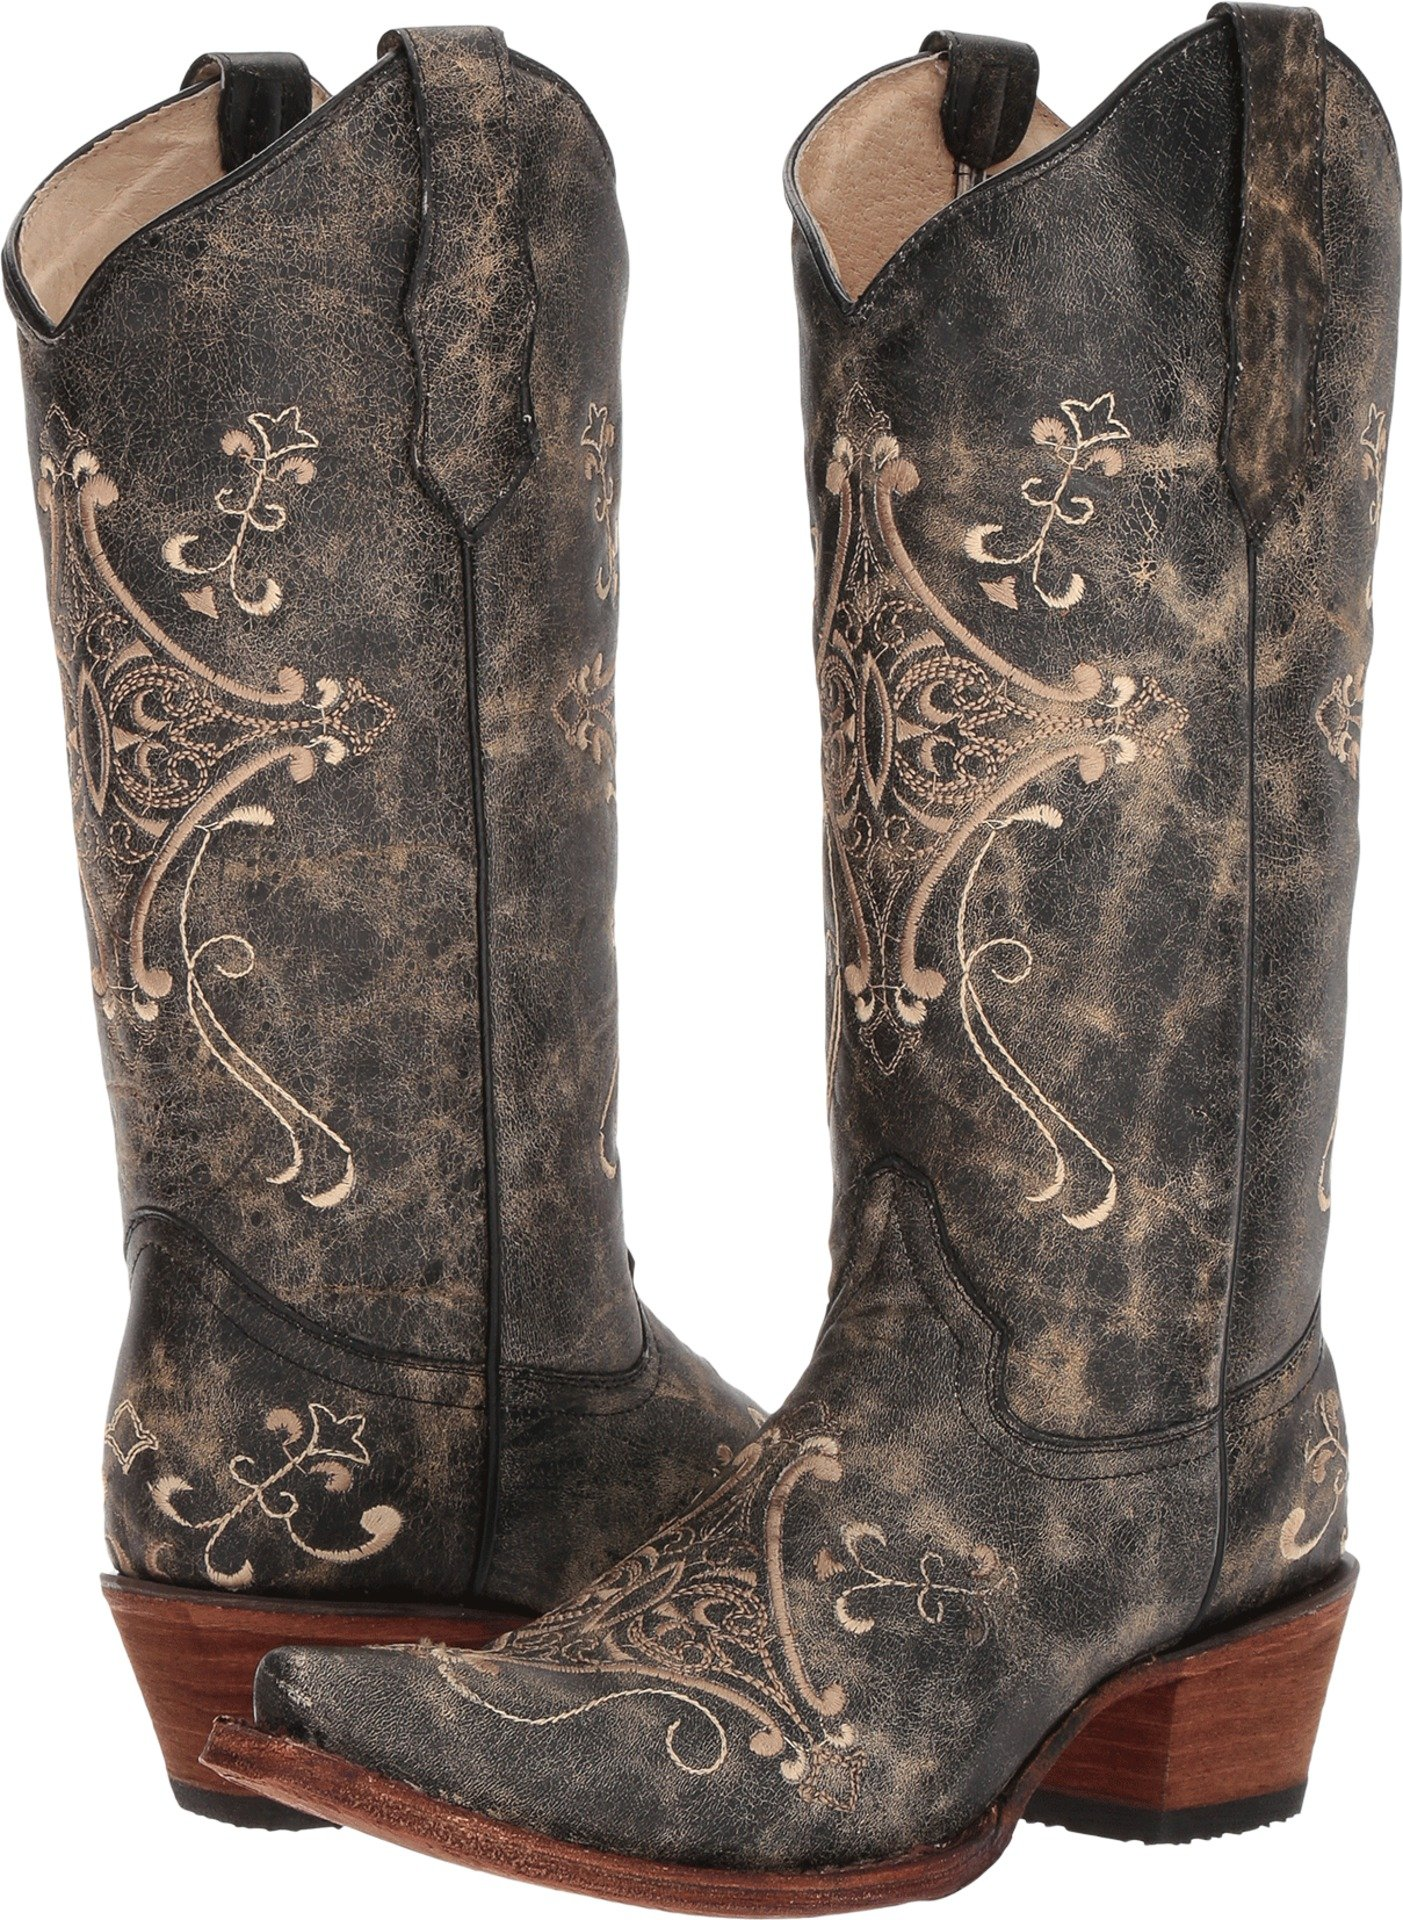 Circle G Women's Crackle Embroidered Western Boots Size 8.5M, Black